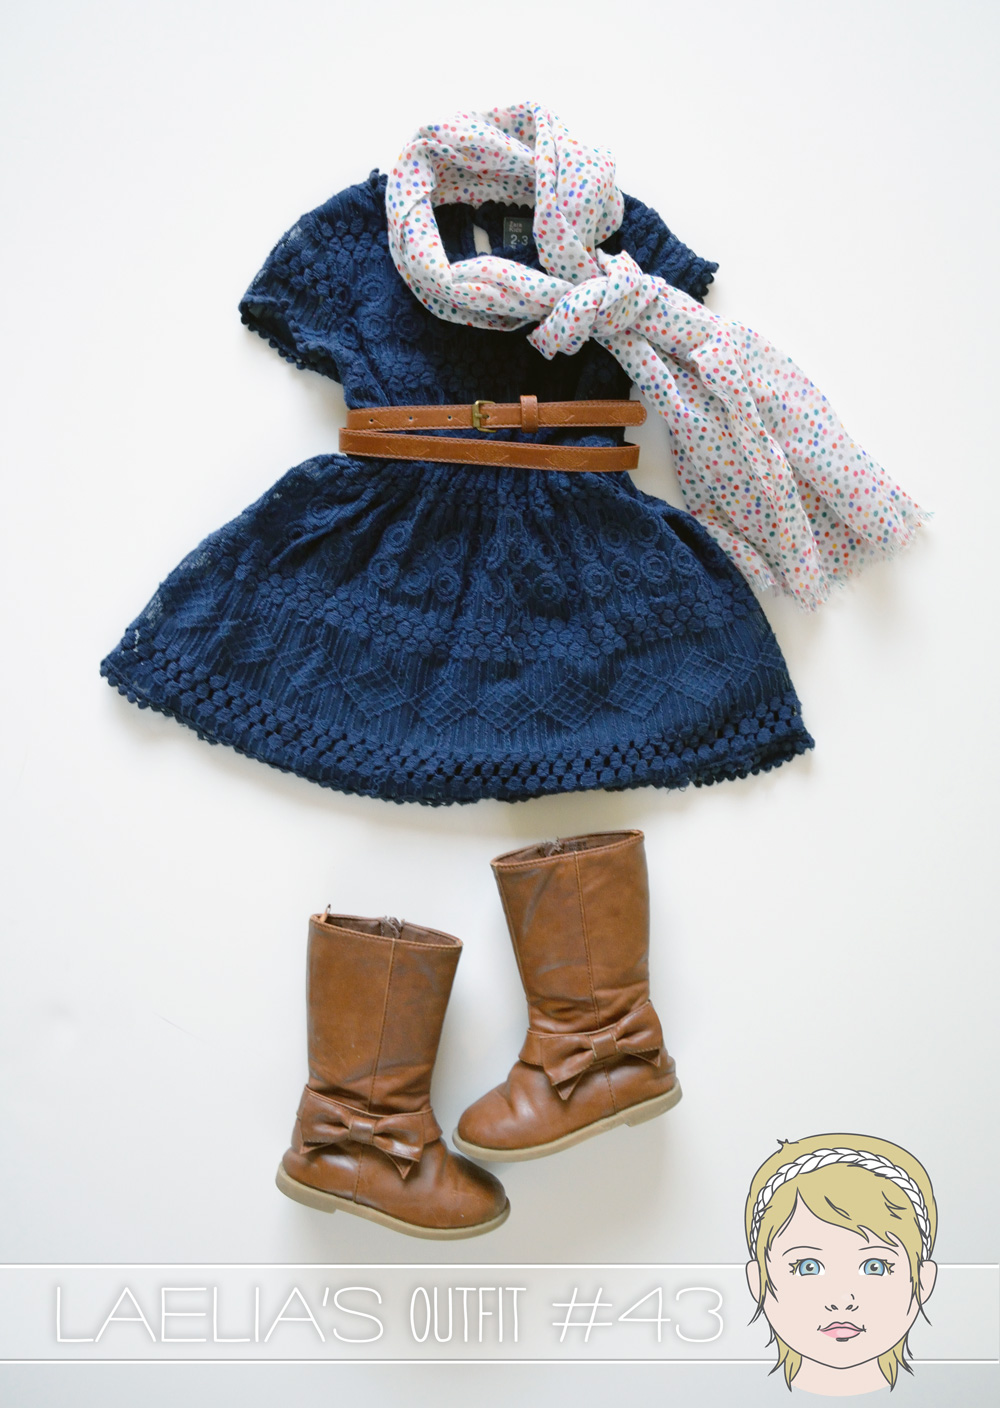 LaeliaOutfit43